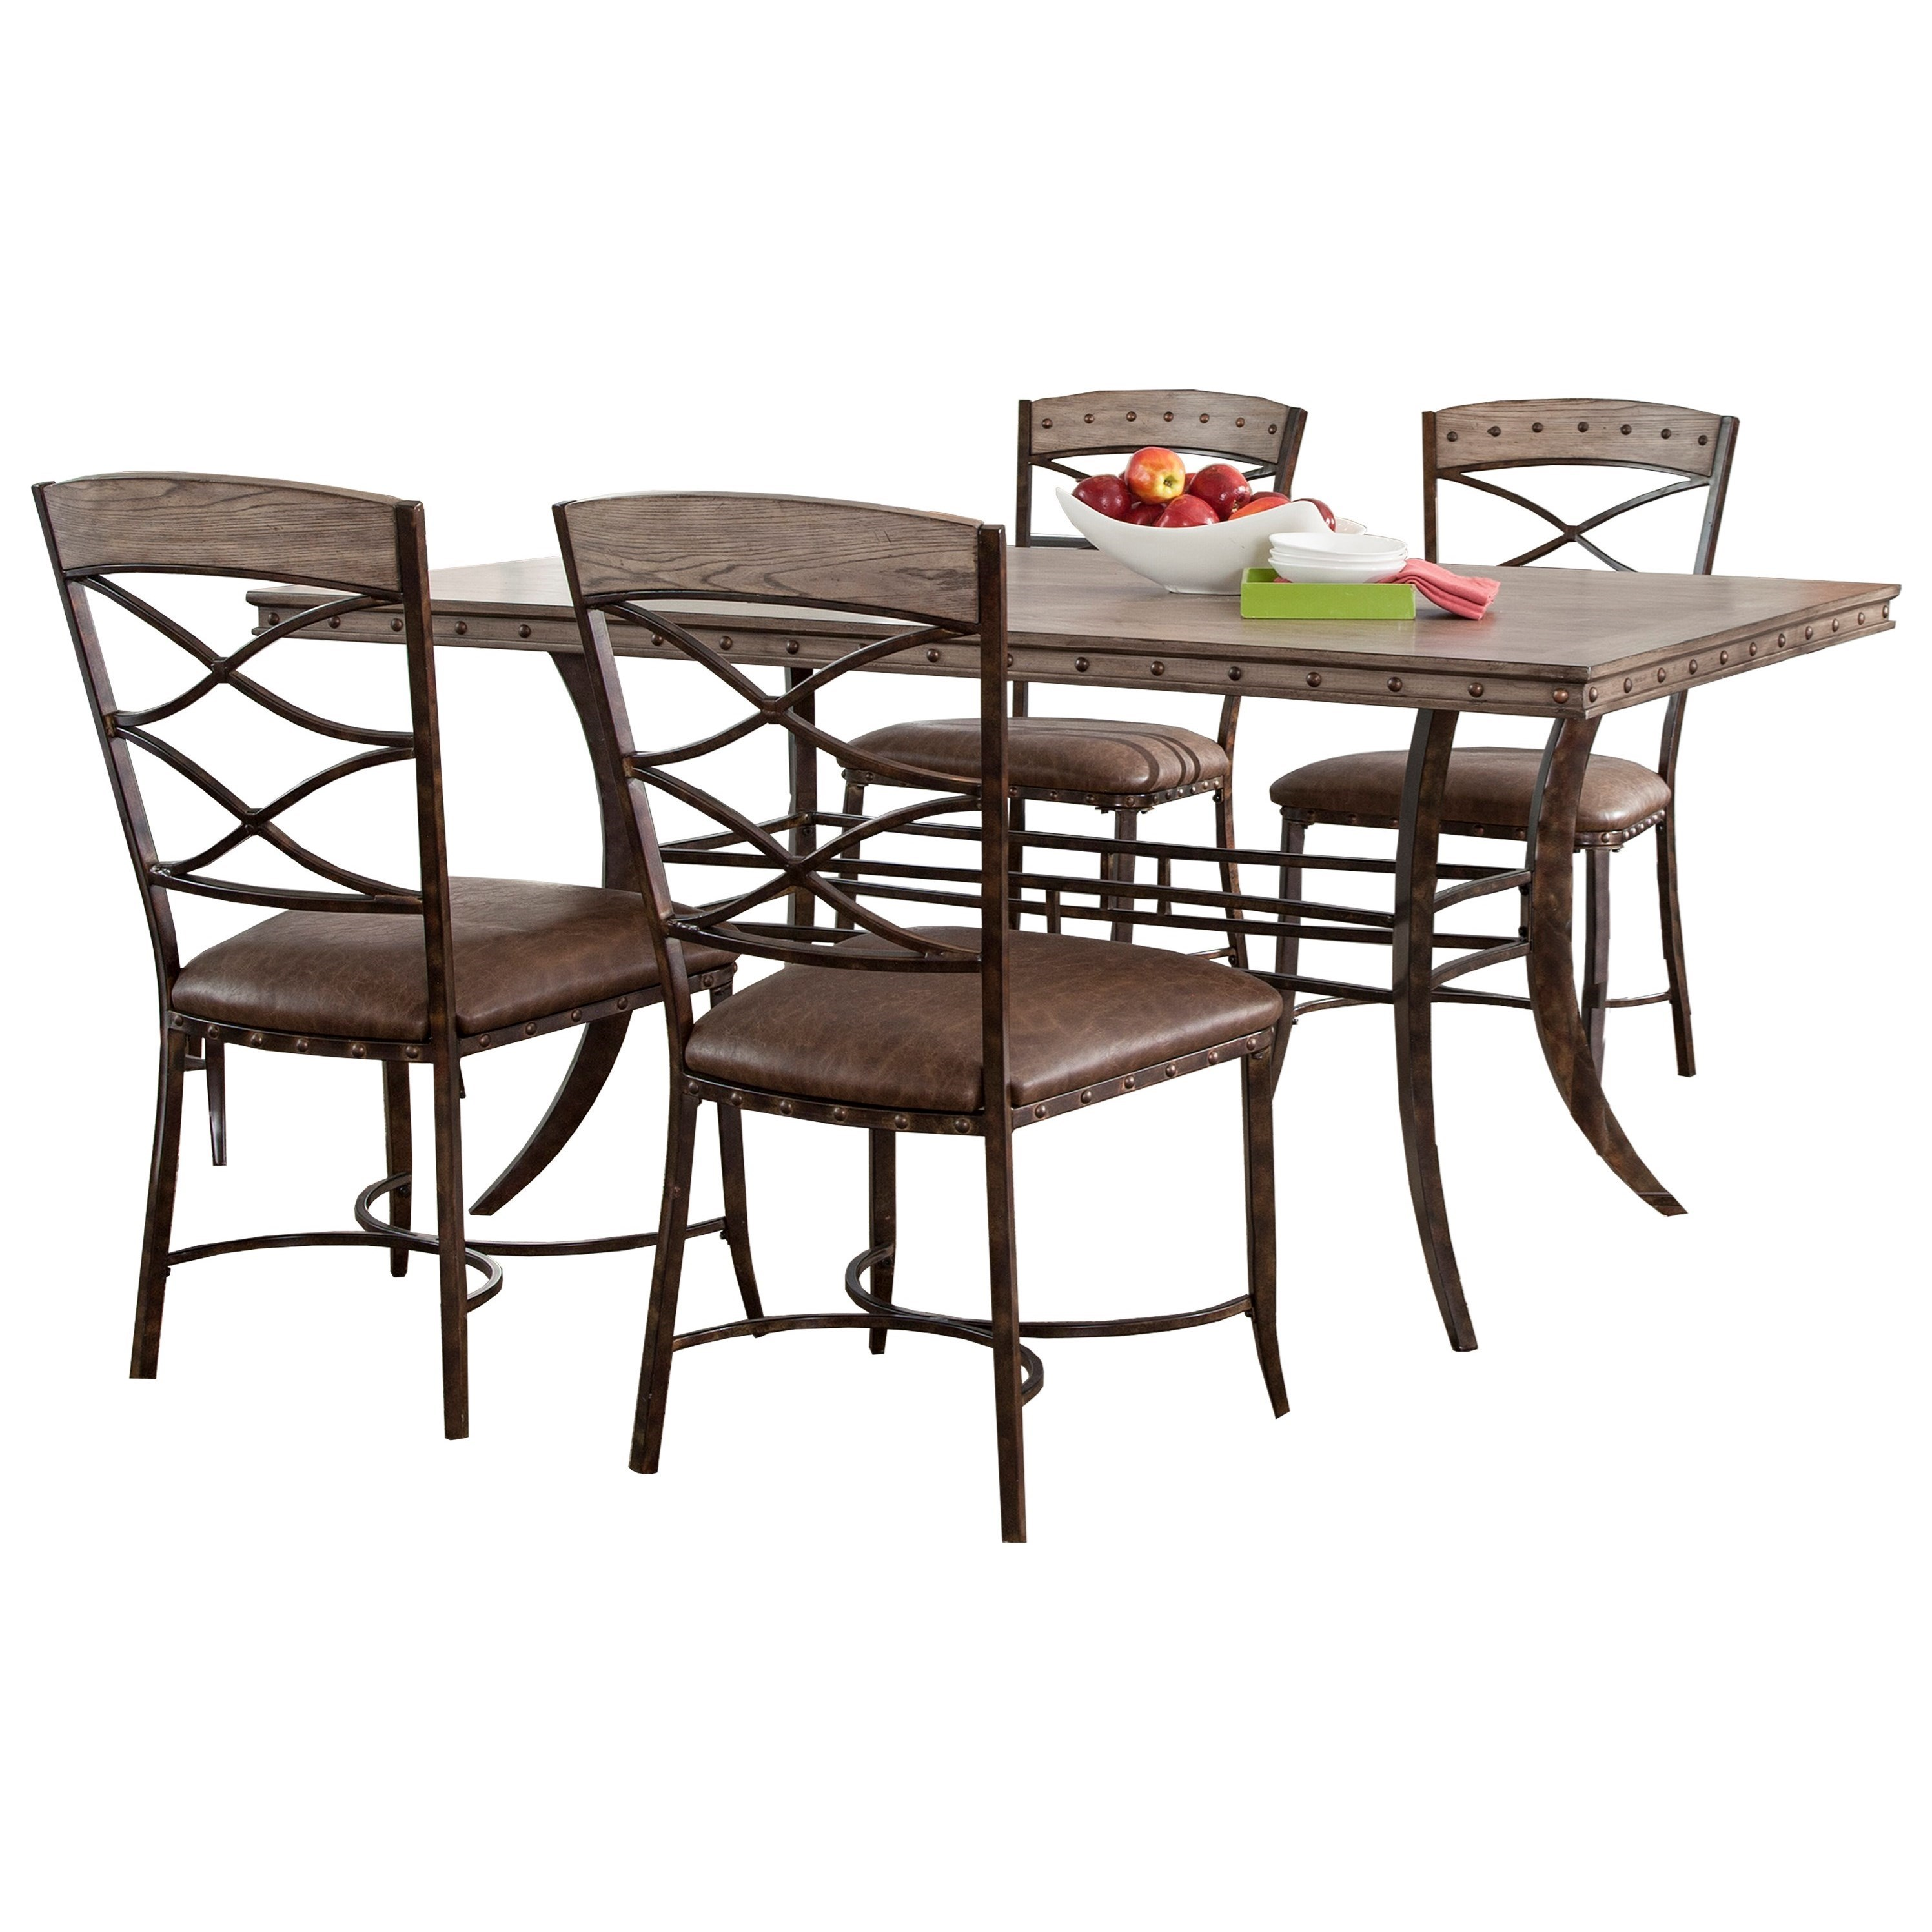 Hillsdale Emmons 5 Piece Rectangle Dining Set With Stud Details